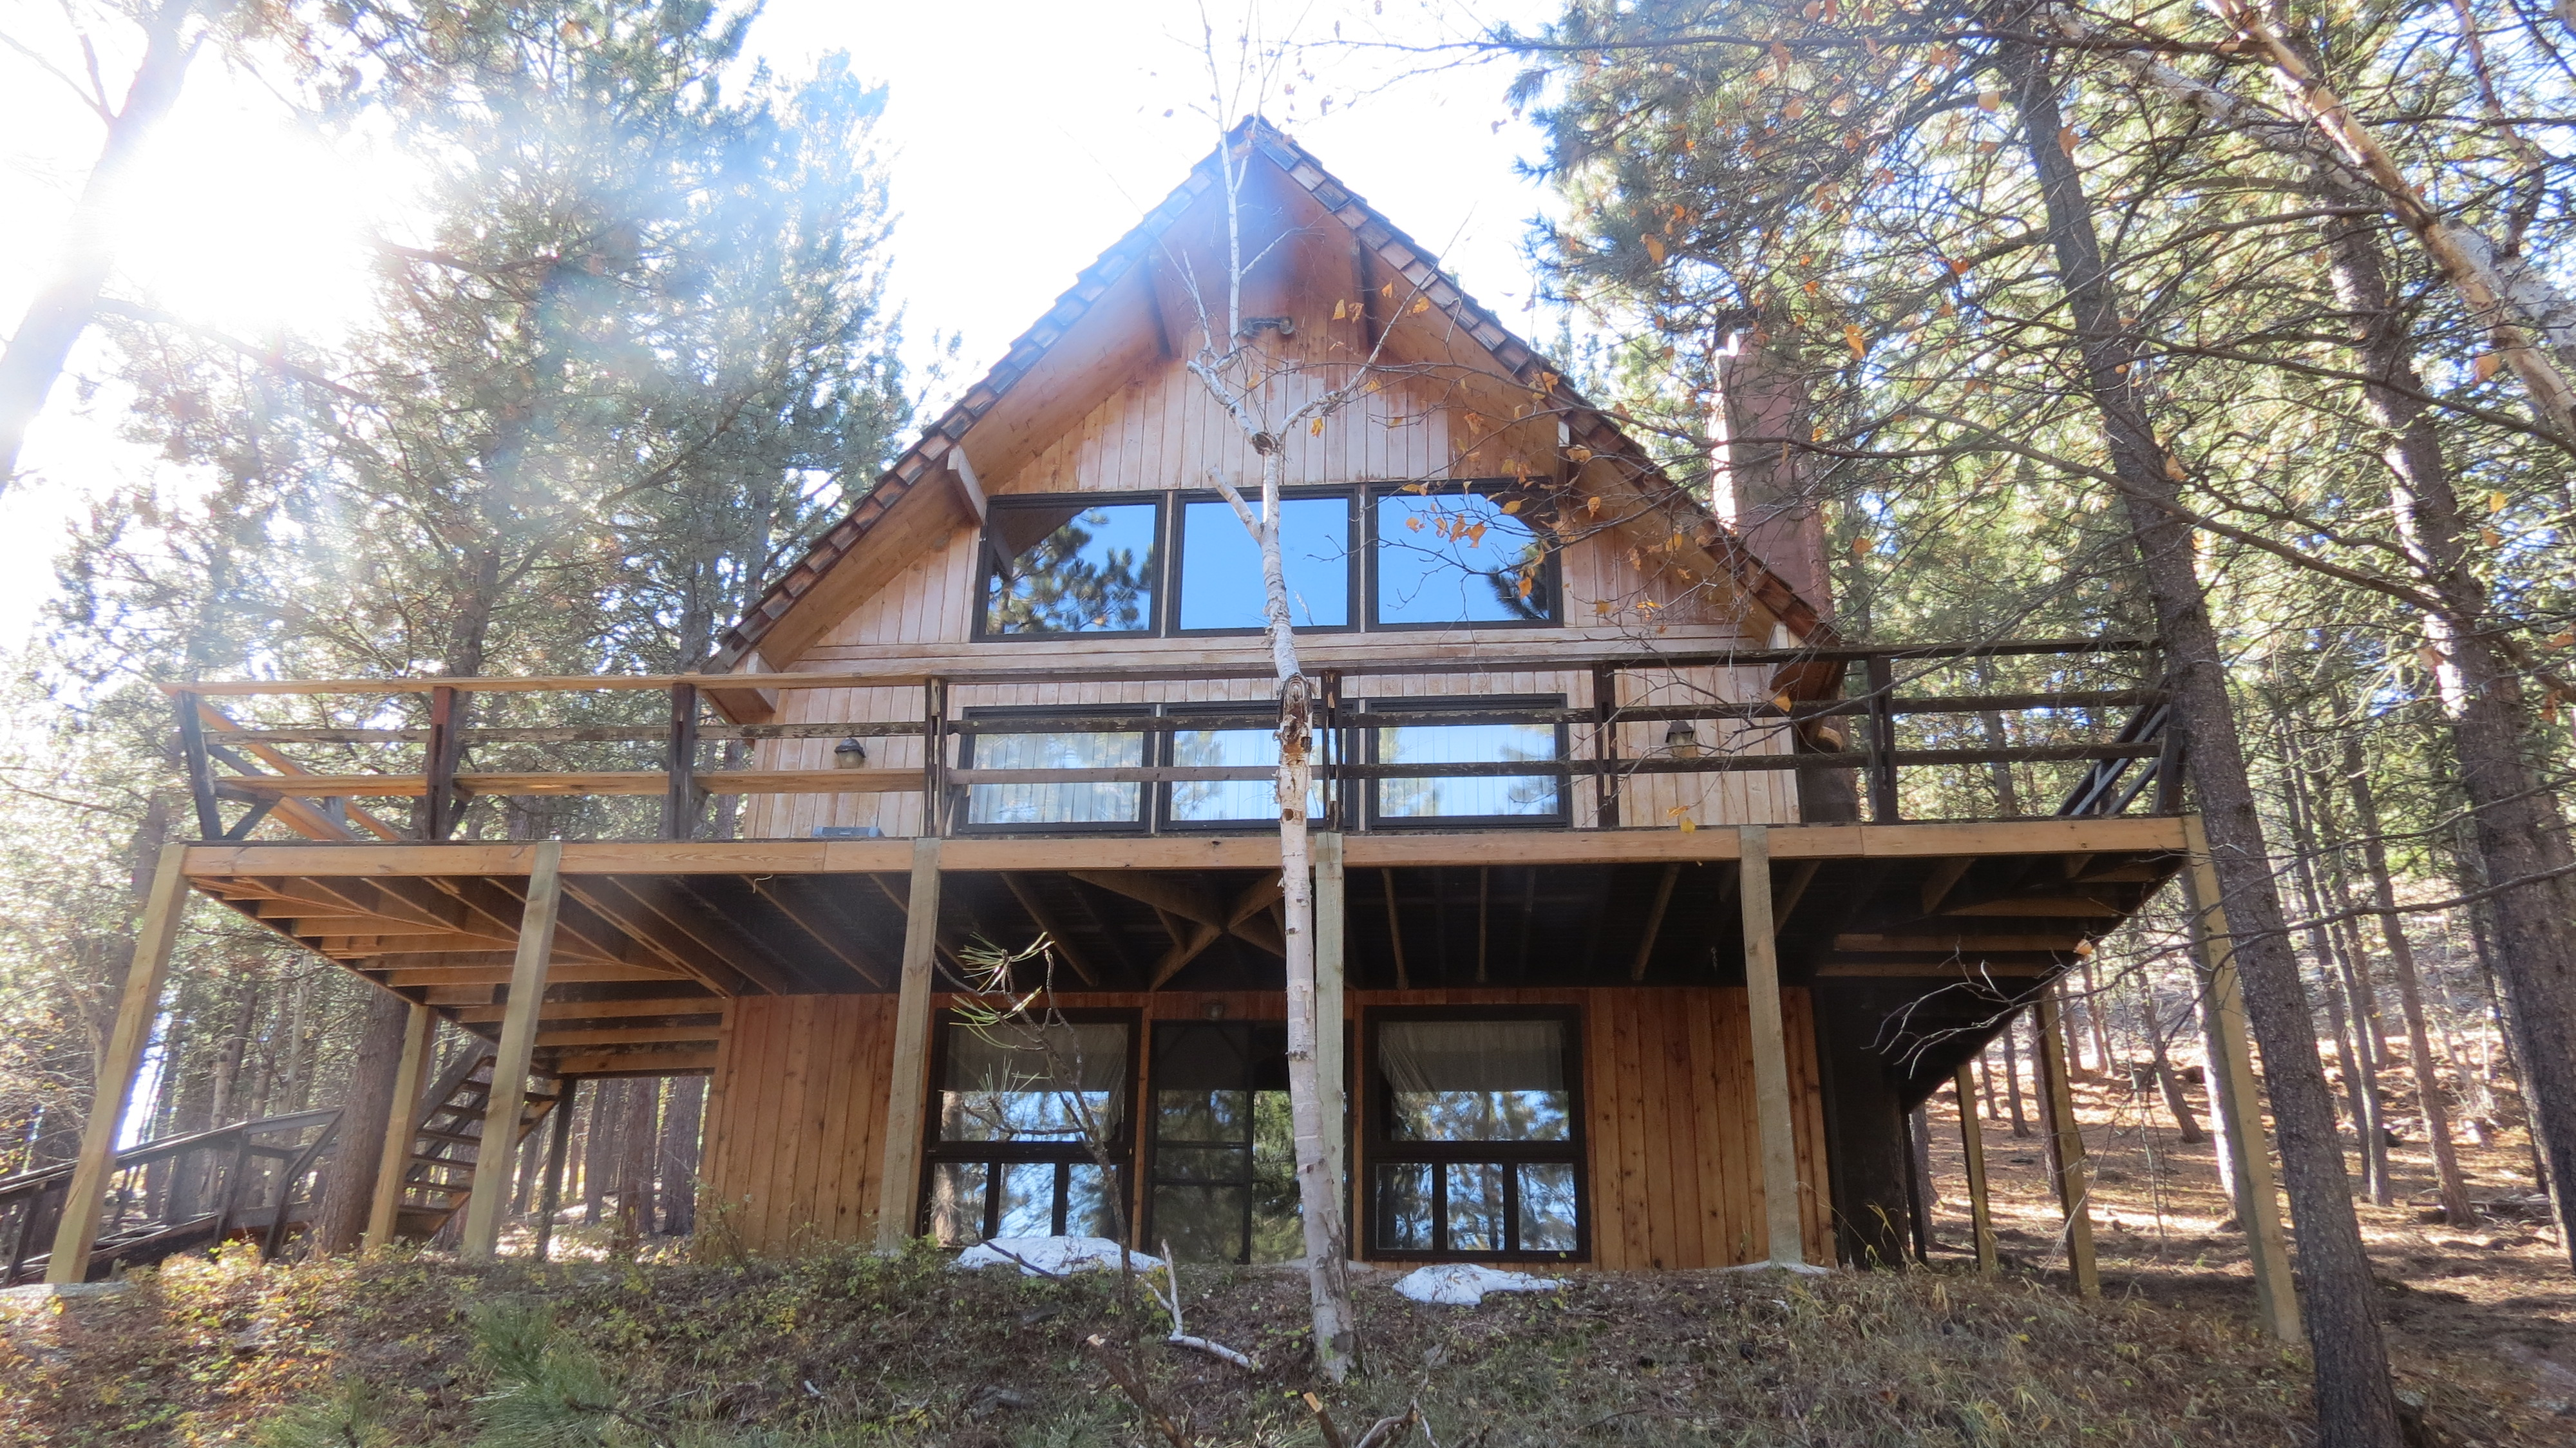 edelweiss mountain lodging 12780 black forest rd, rapid city, sd